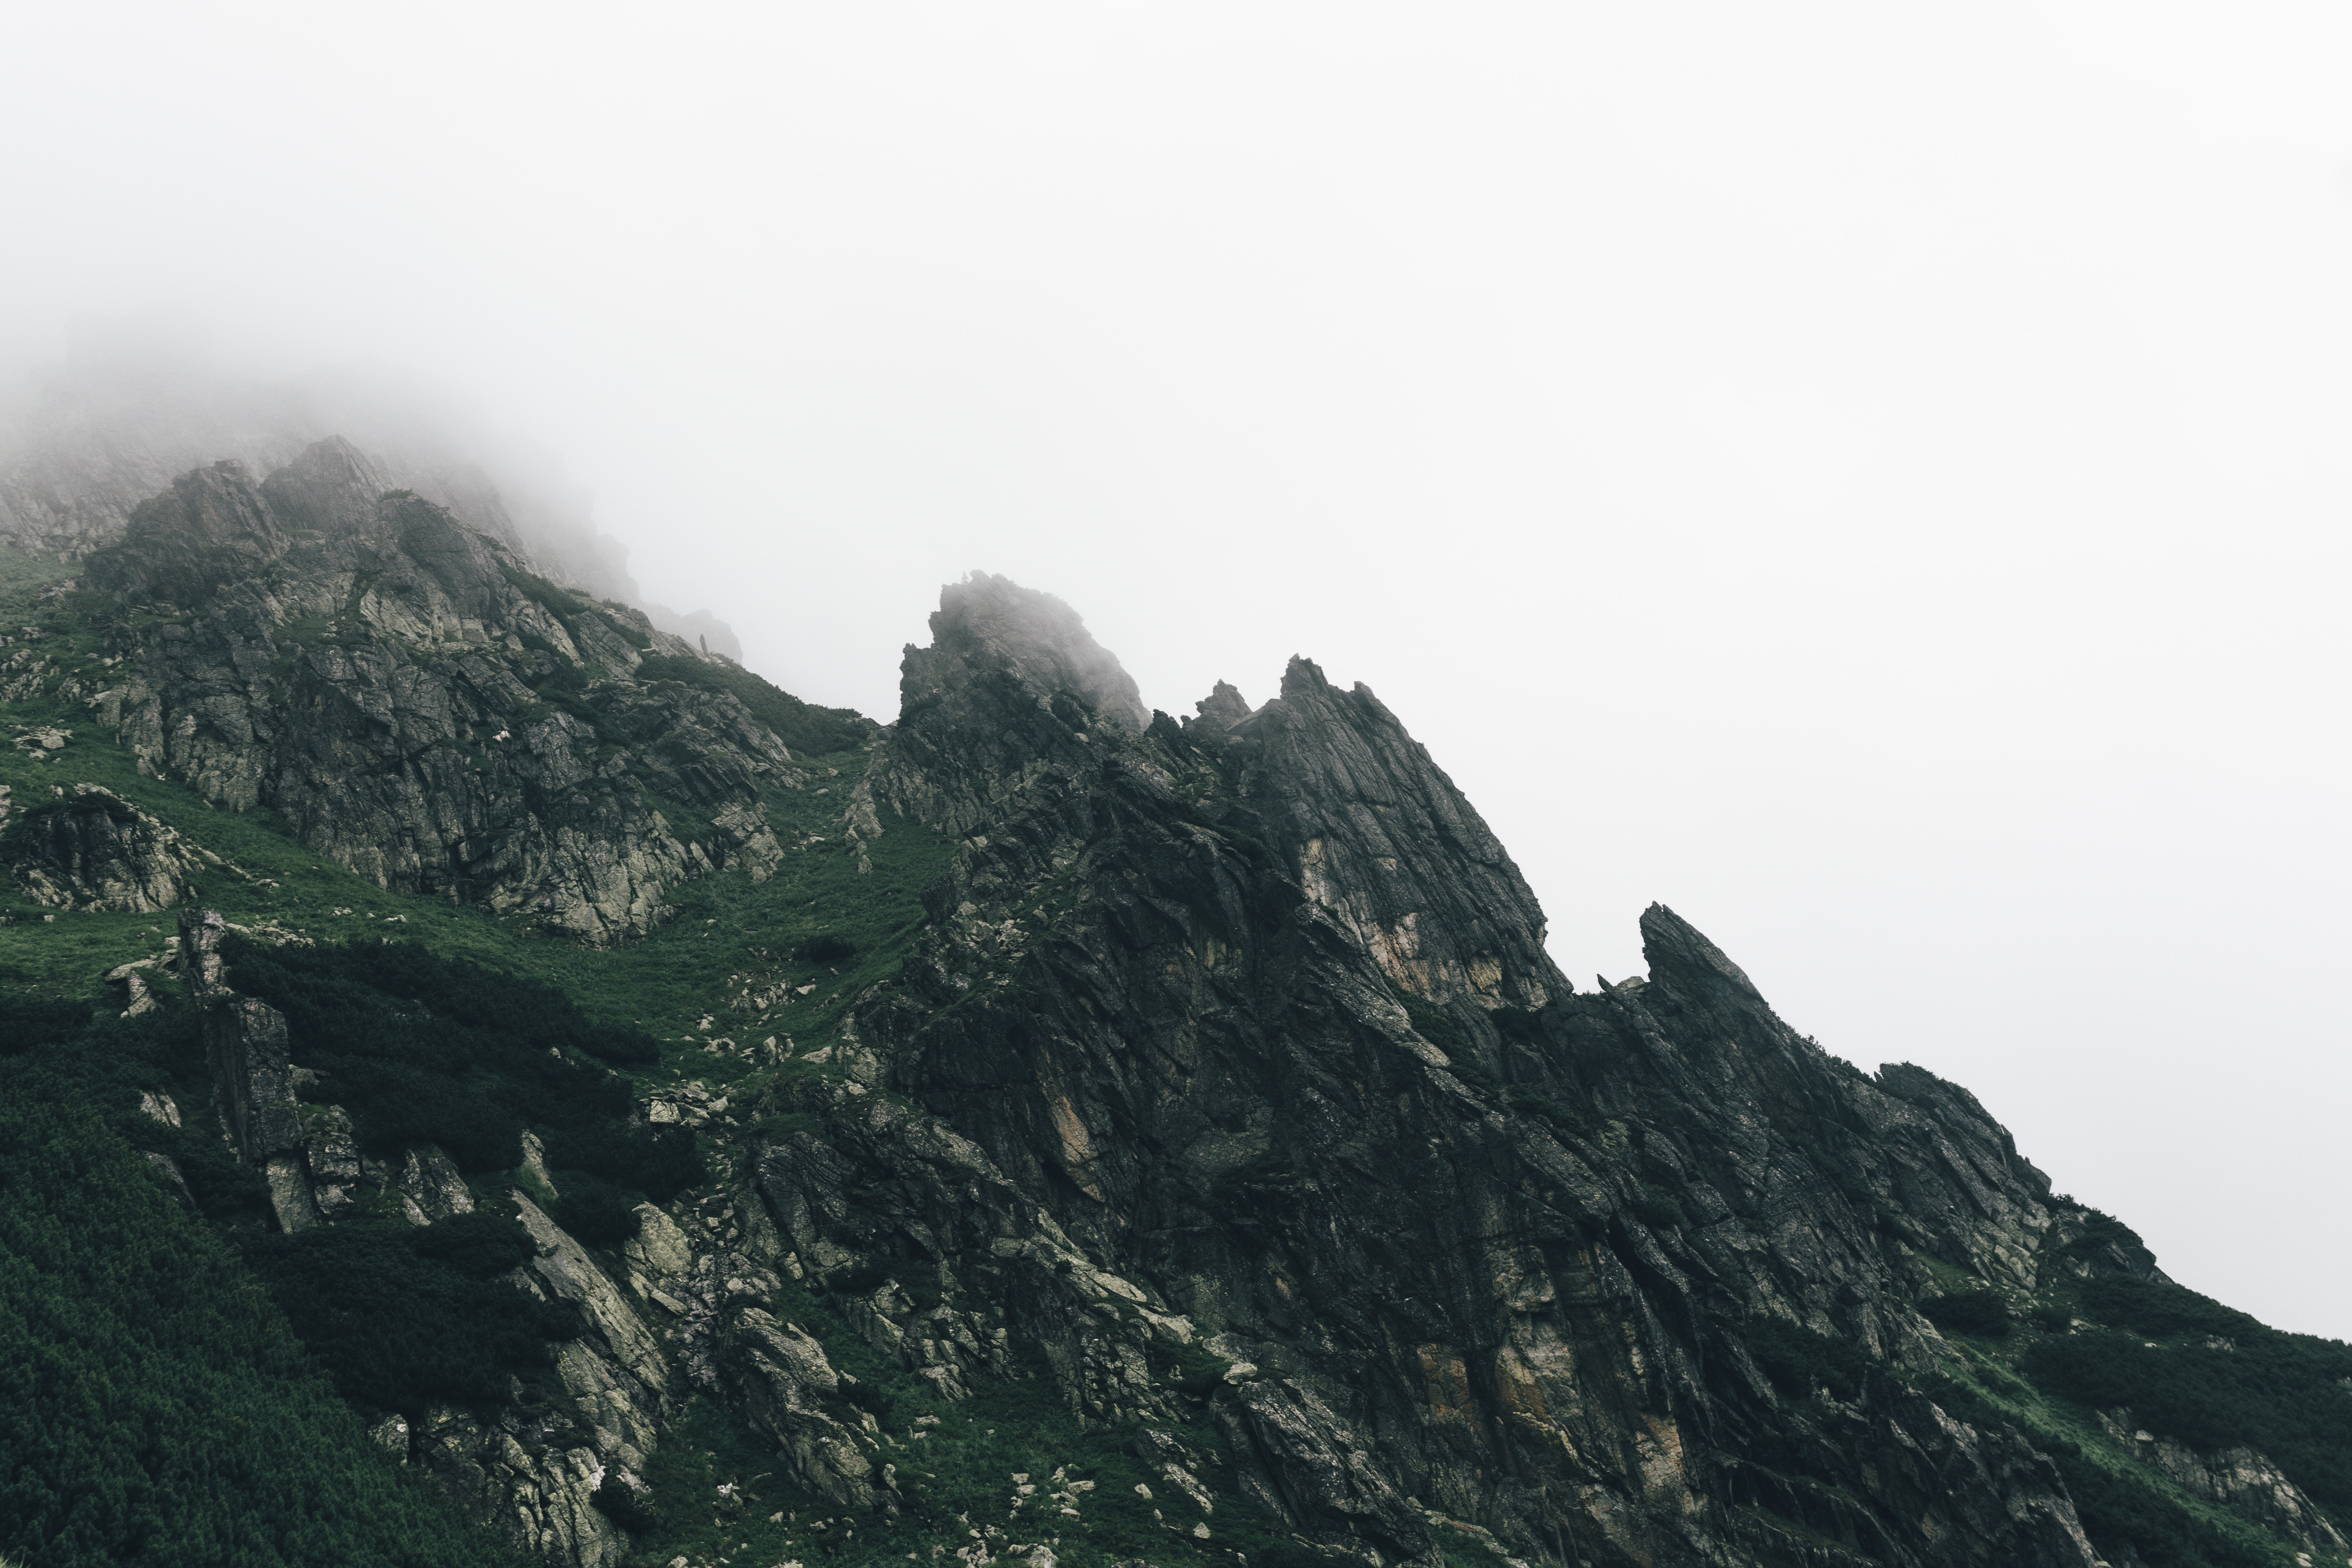 mountain covered in mist under cloudy sky